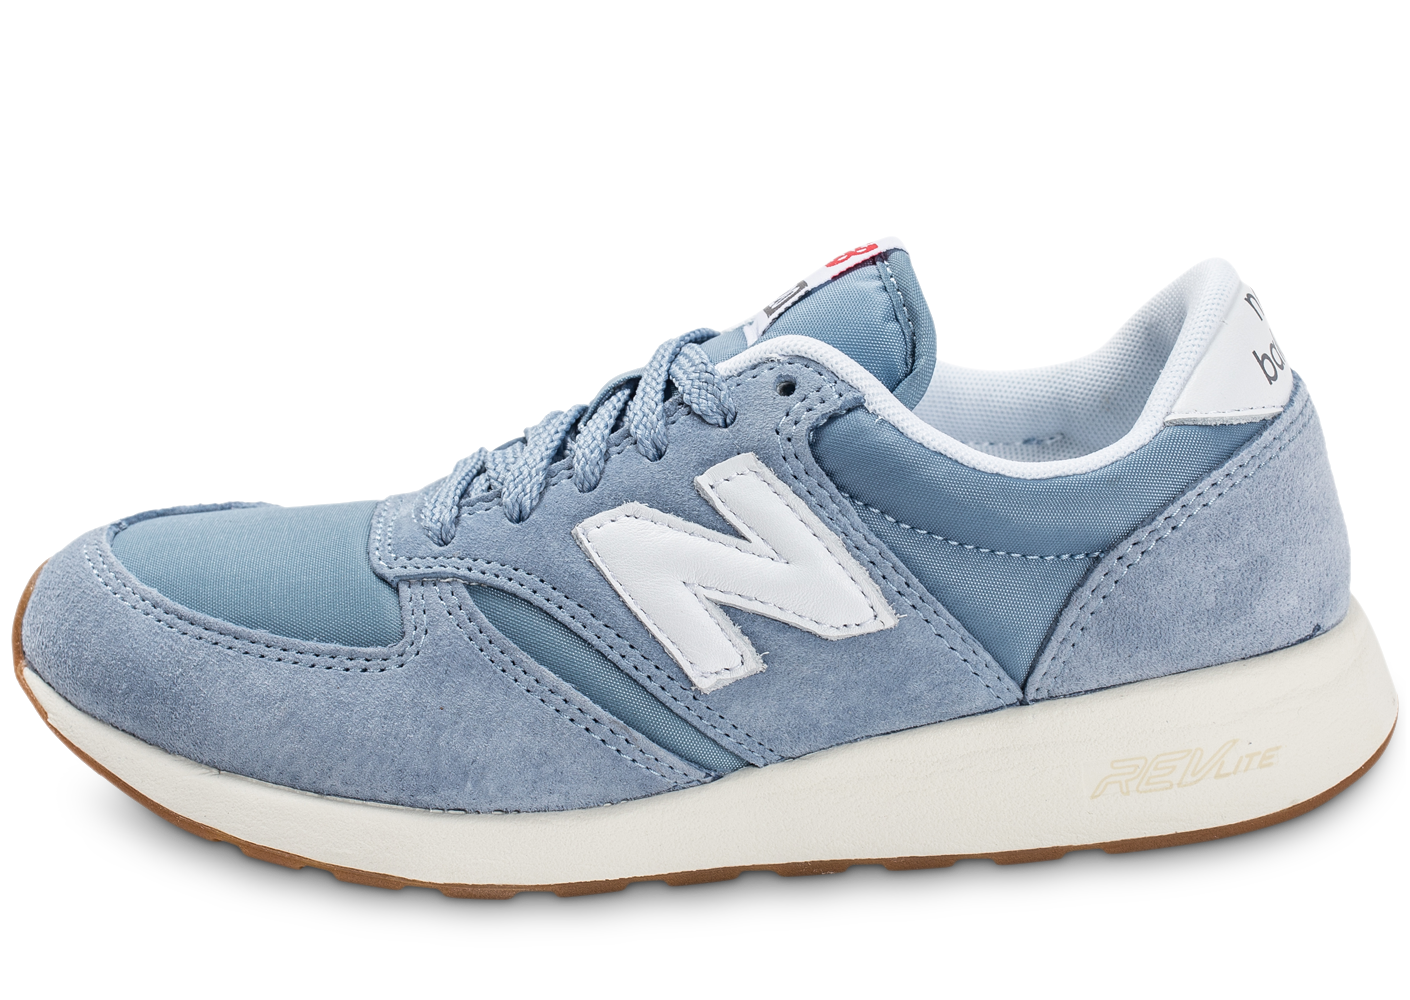 New Balance Mlr420sp Bleu Ciel Baskets/Running Femme